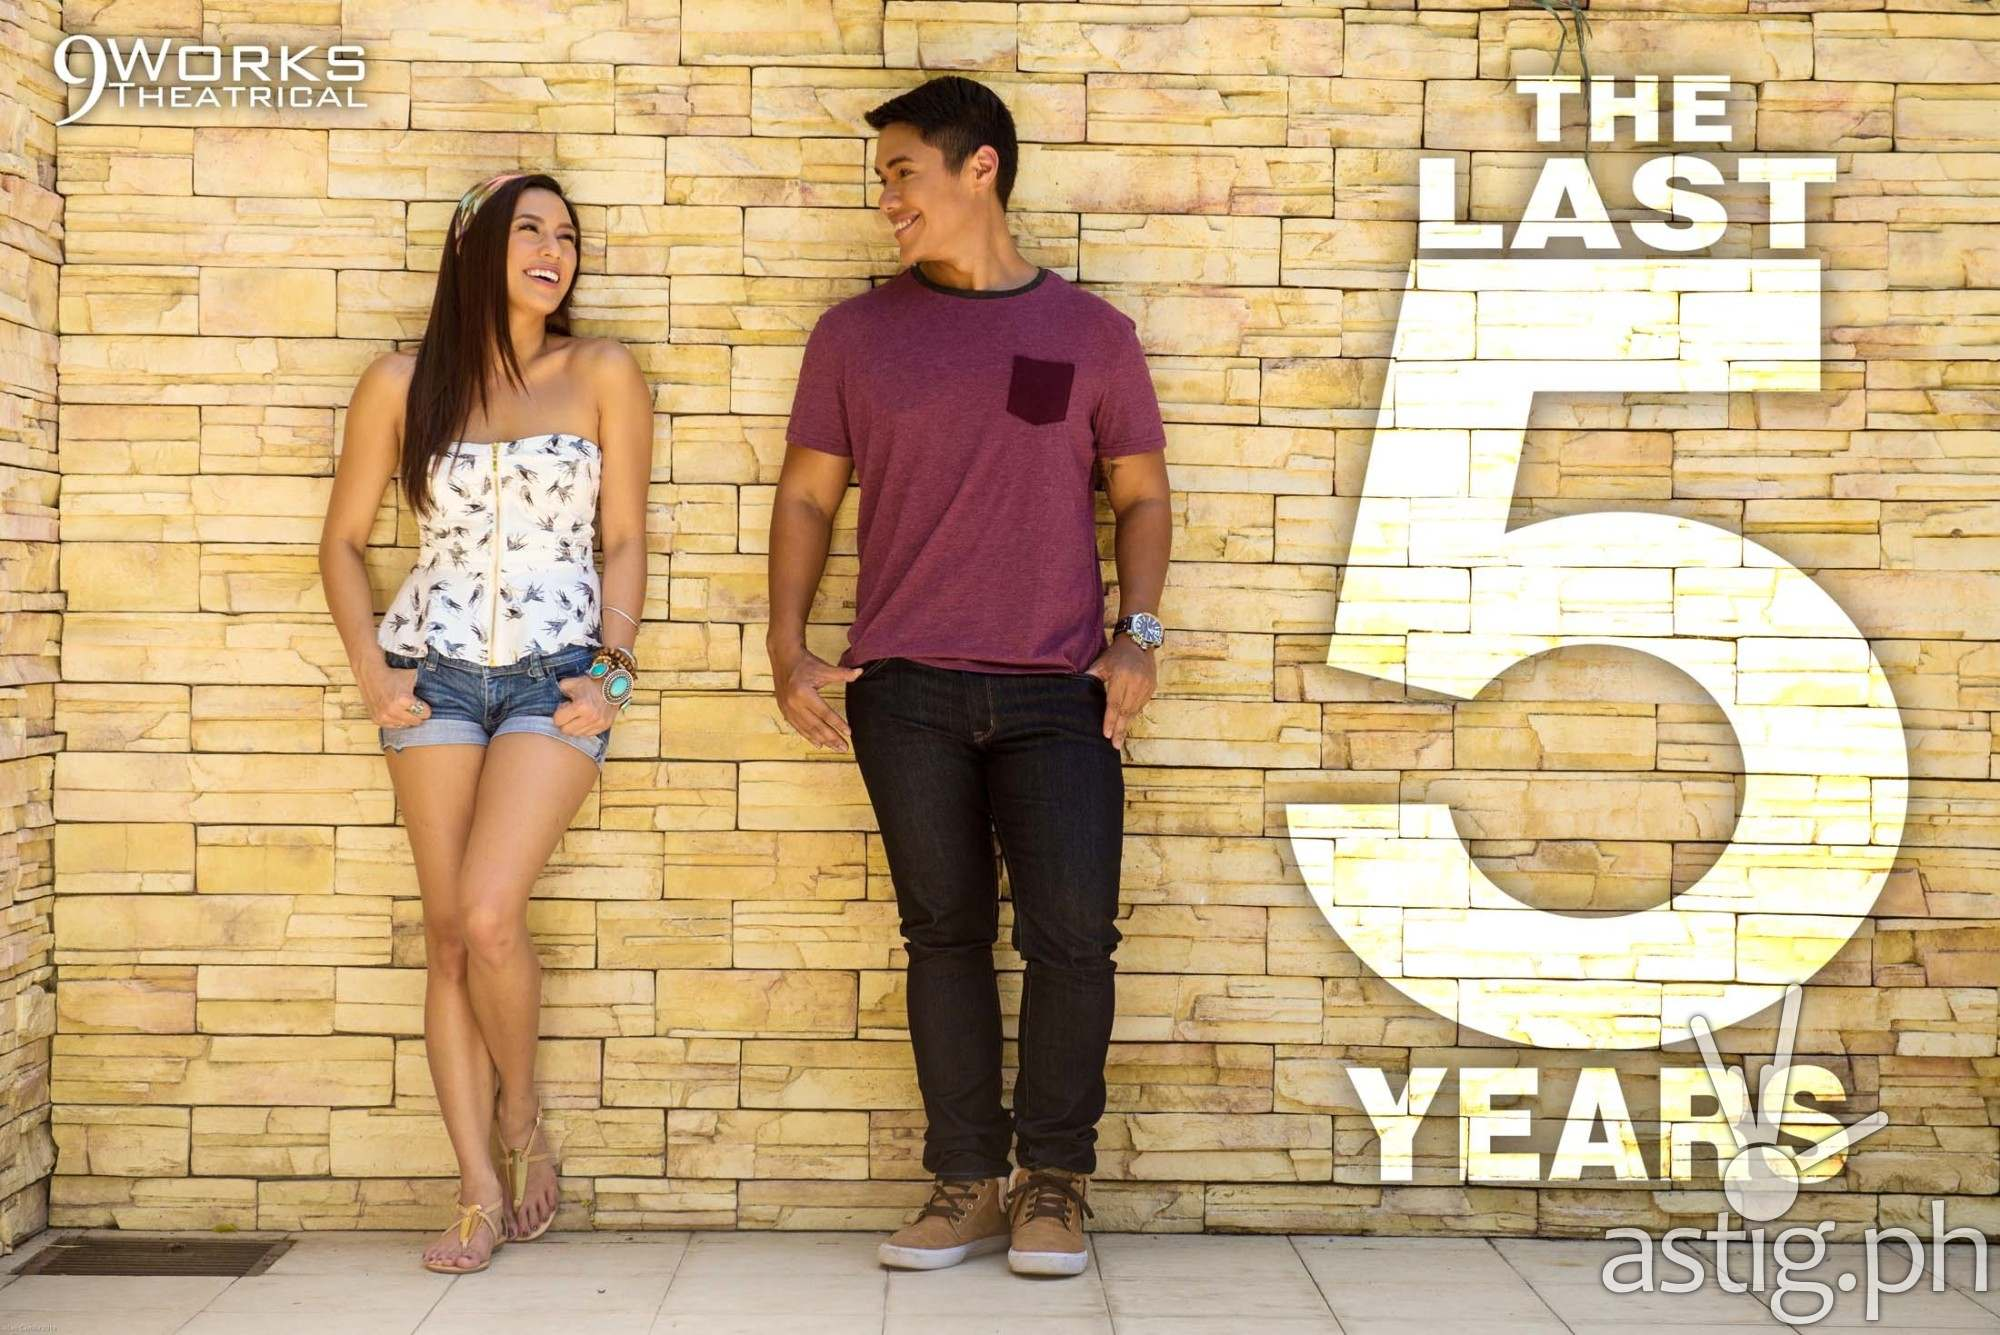 Nikki Gil, Joaquin Valdes in 'Last Five Years' by 9Works Theatrical